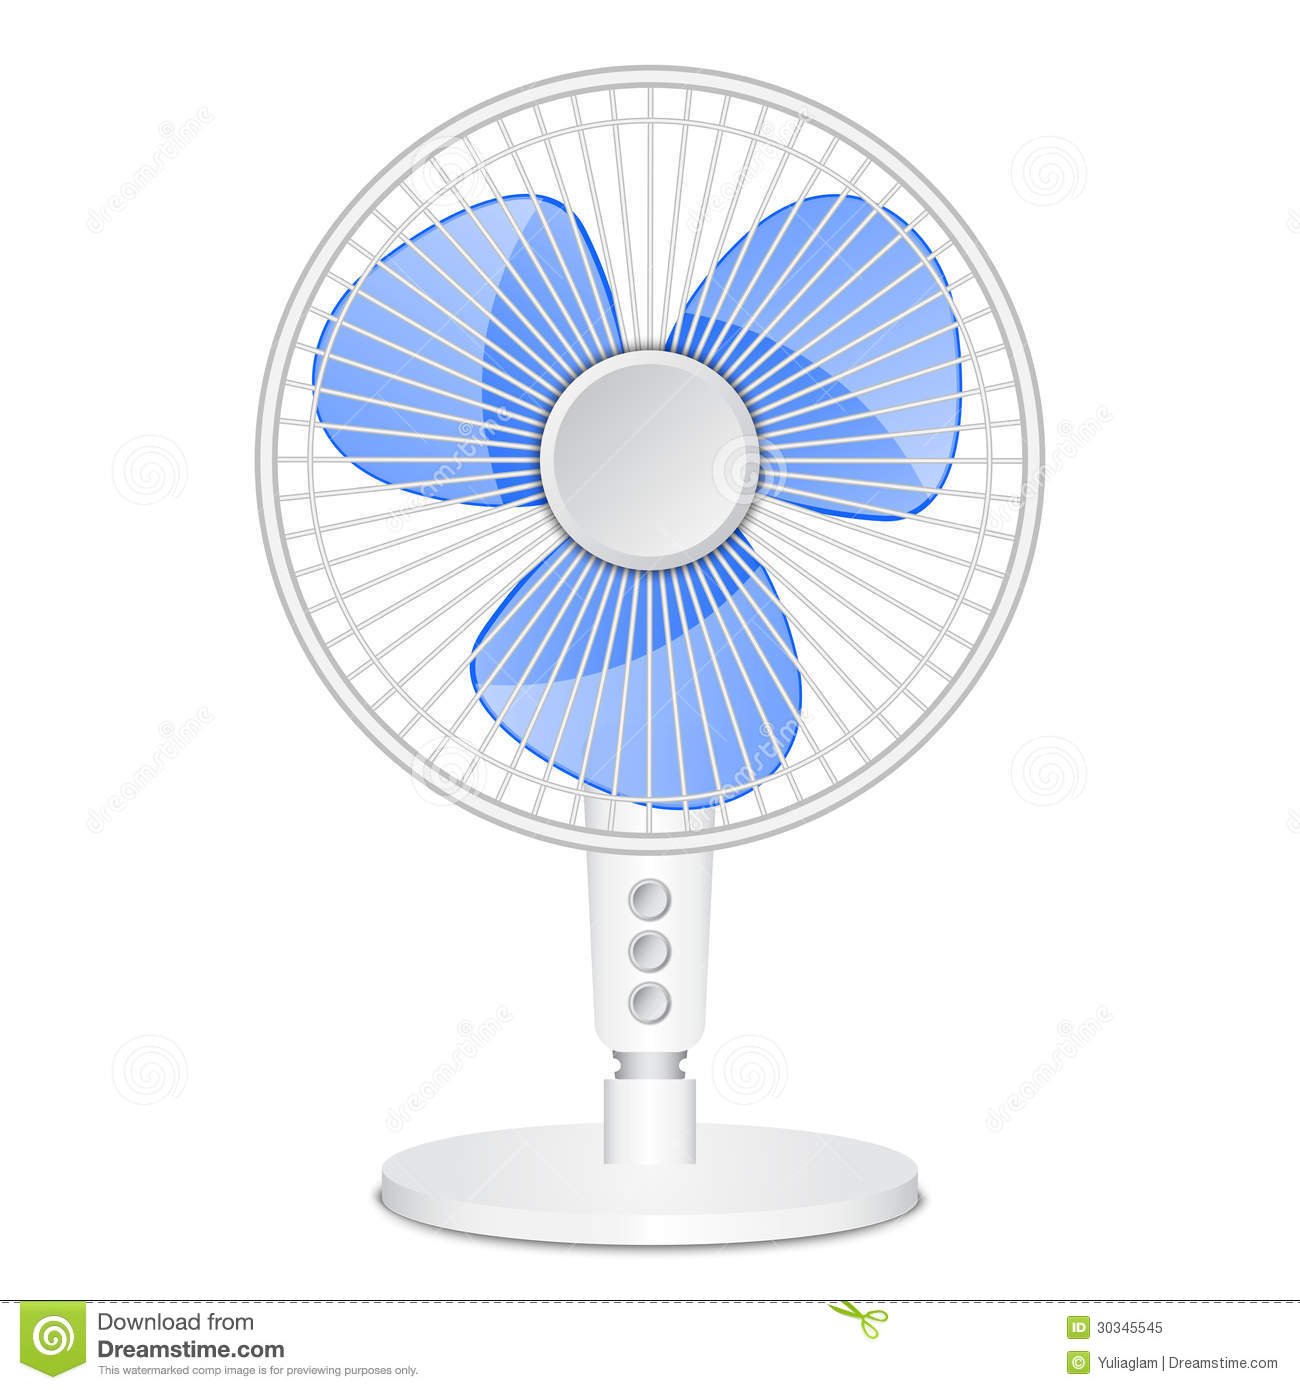 A Sketch Of A Electric Fan : Small electric fan stock vector illustration of button